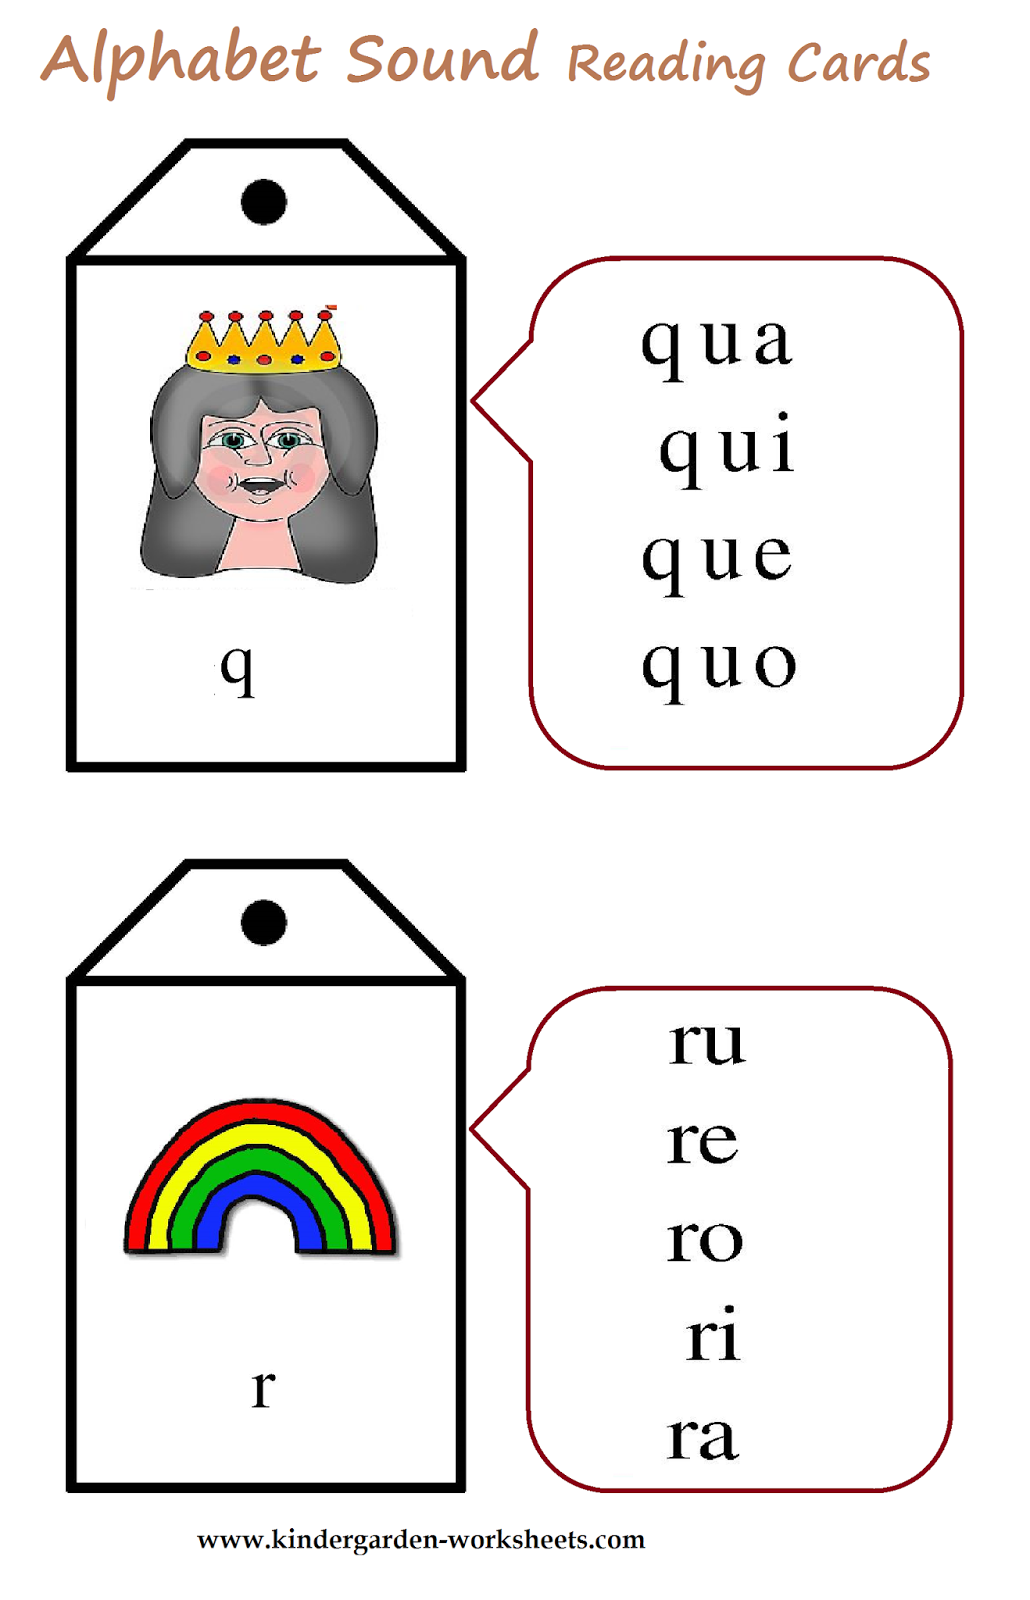 kindergarten worksheets alphabet sound read cards. Black Bedroom Furniture Sets. Home Design Ideas